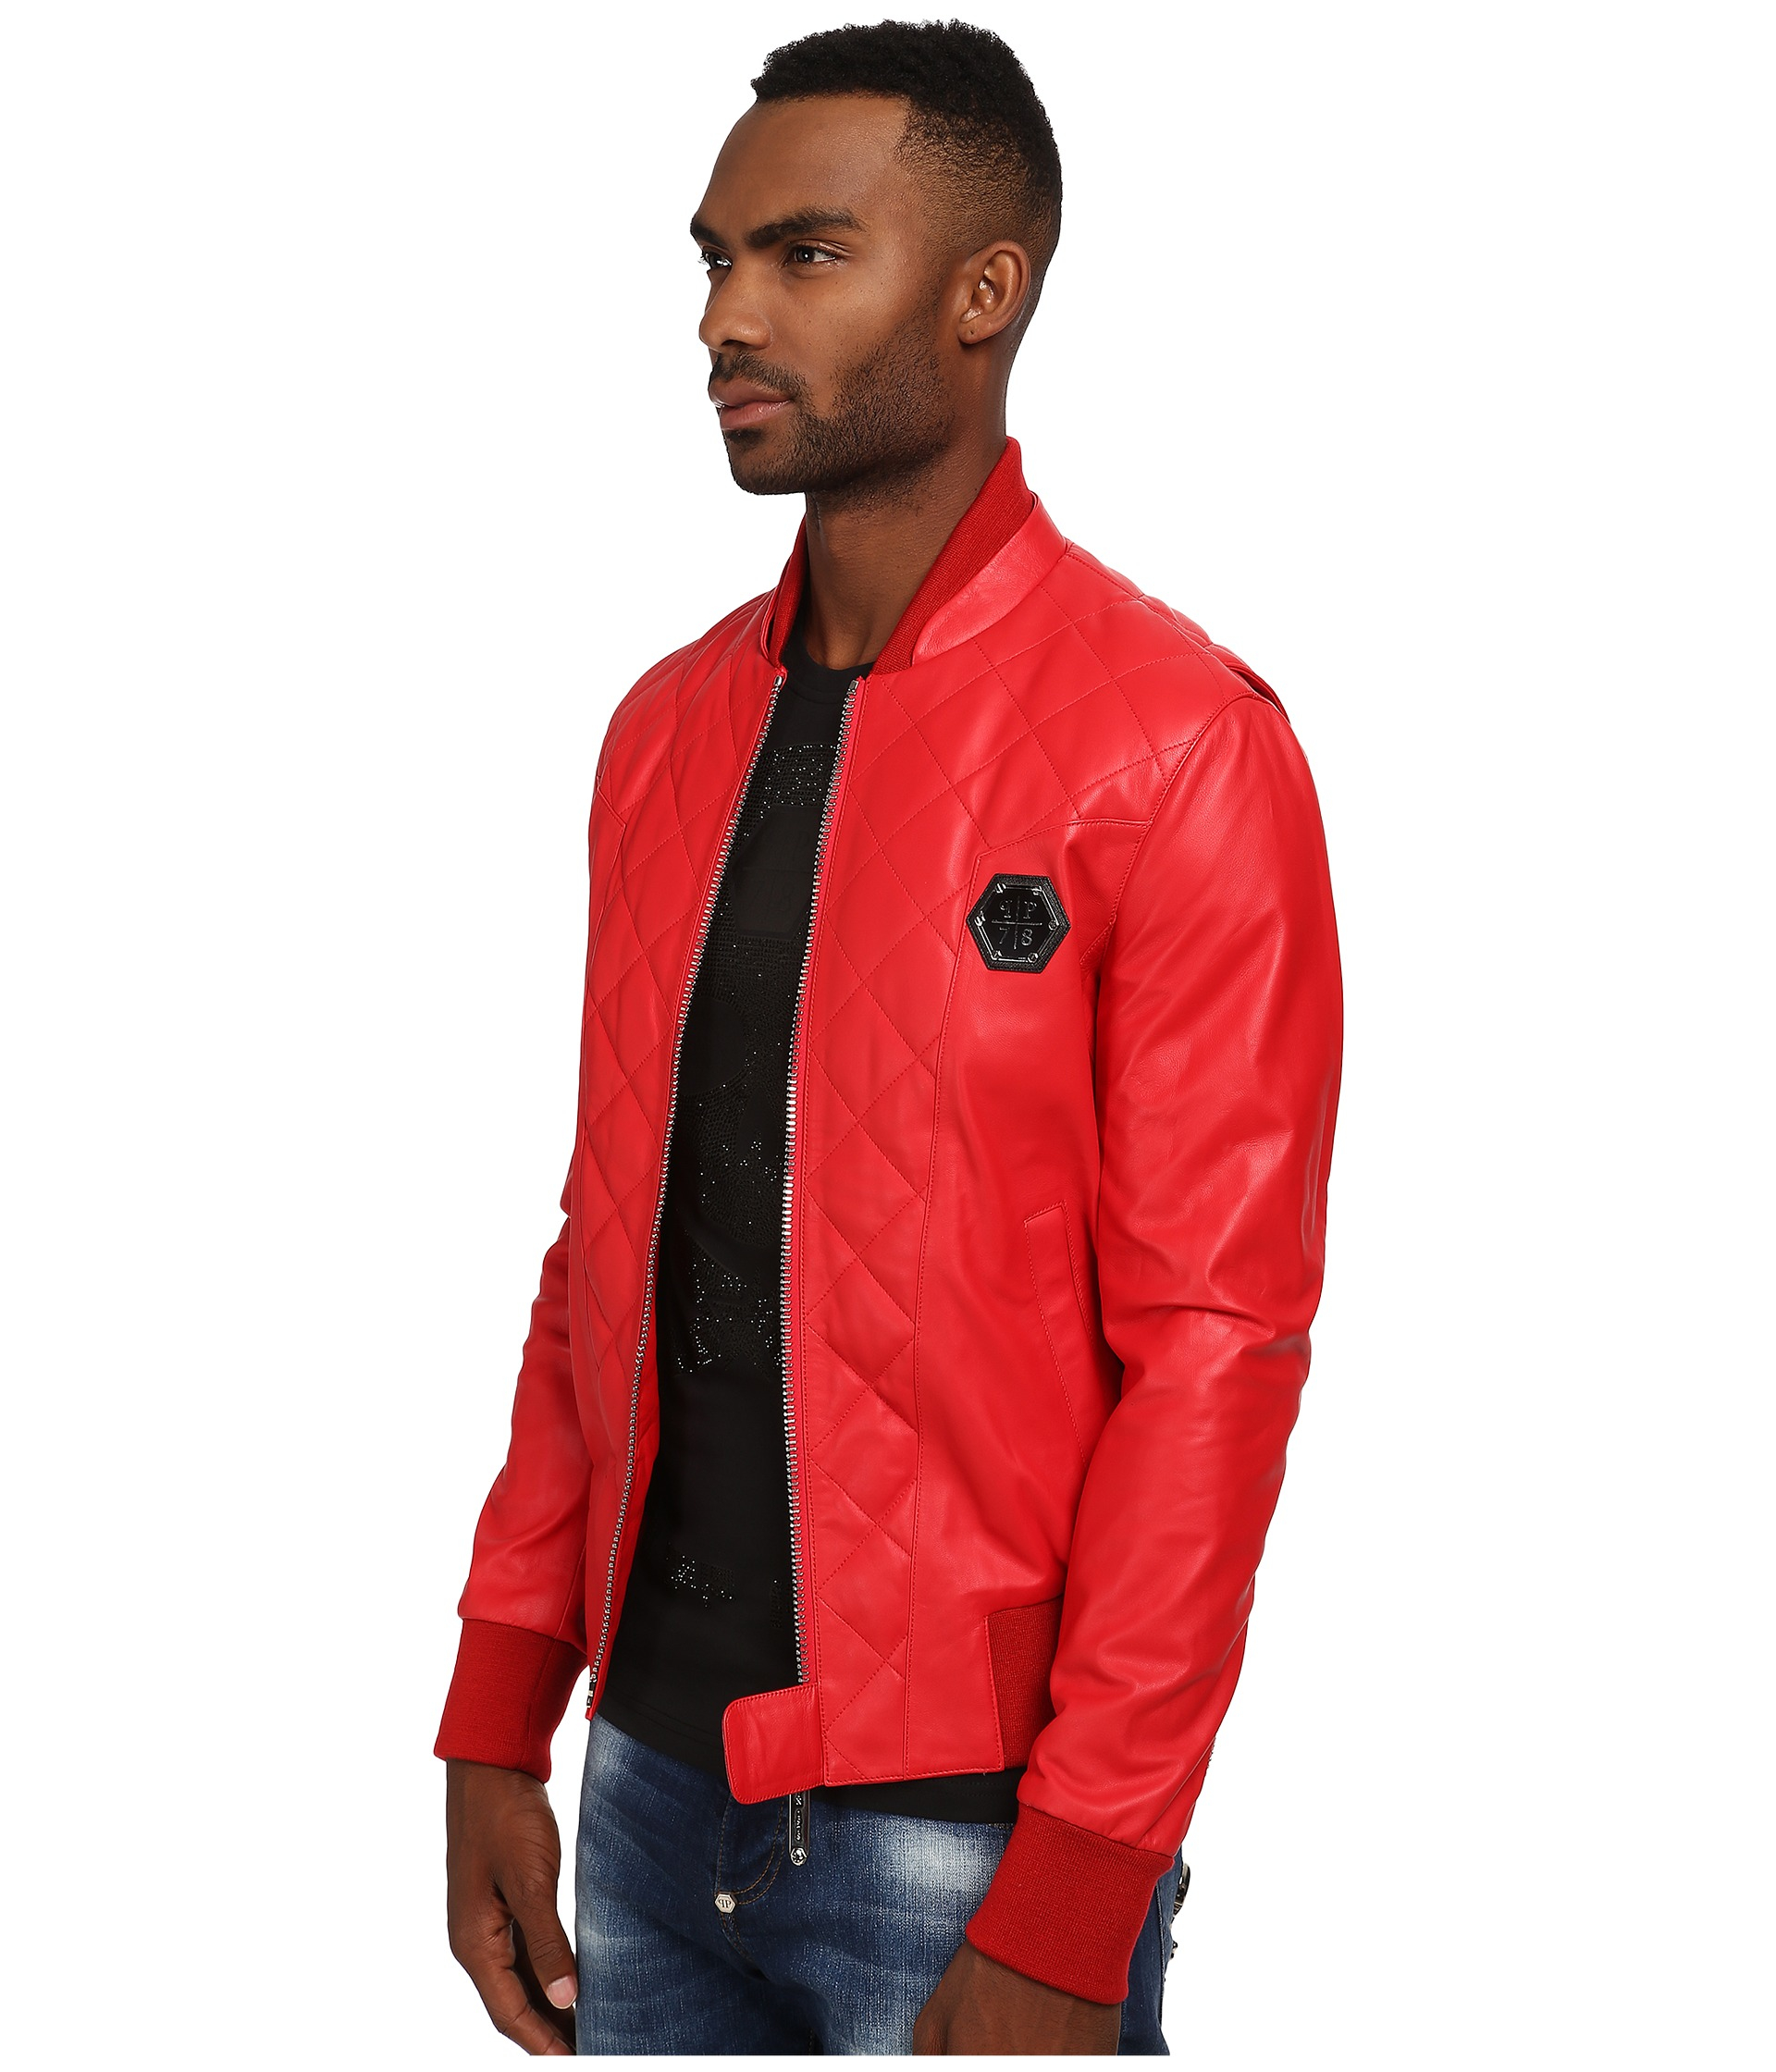 lyst philipp plein no one leather jacket in red for men. Black Bedroom Furniture Sets. Home Design Ideas